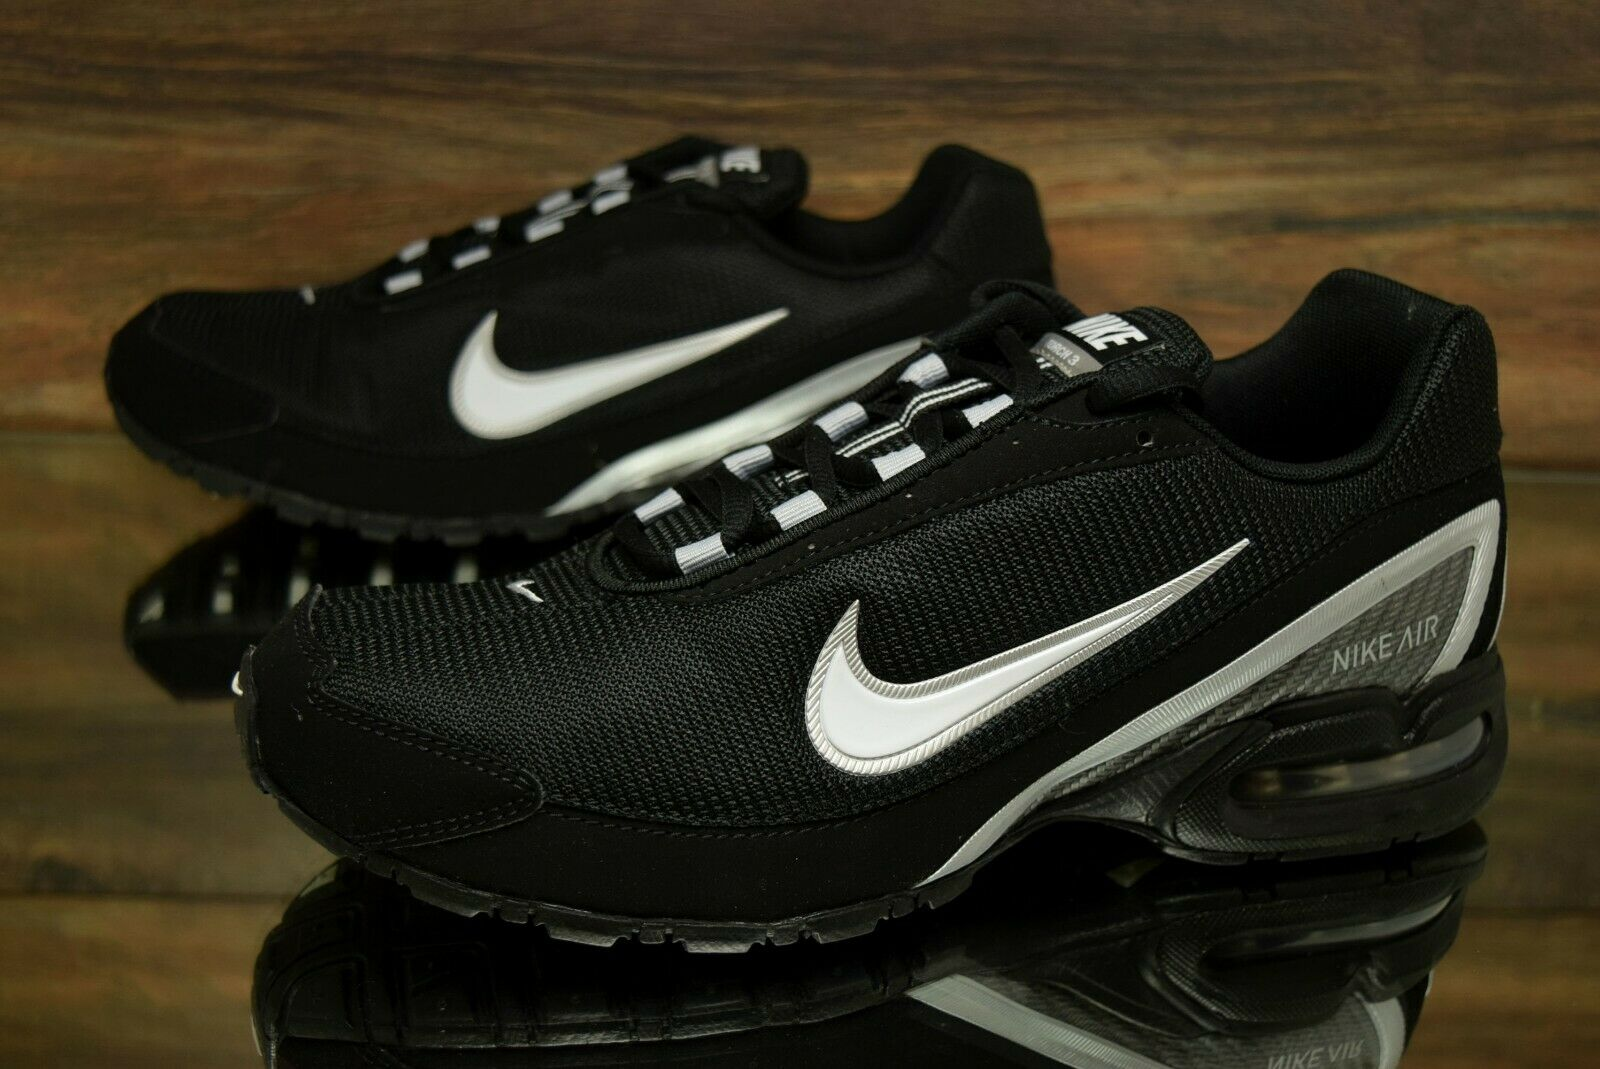 Nike Air Max Torch 3 Black White 319116 011 Running Shoes Men's Multi Size NEW